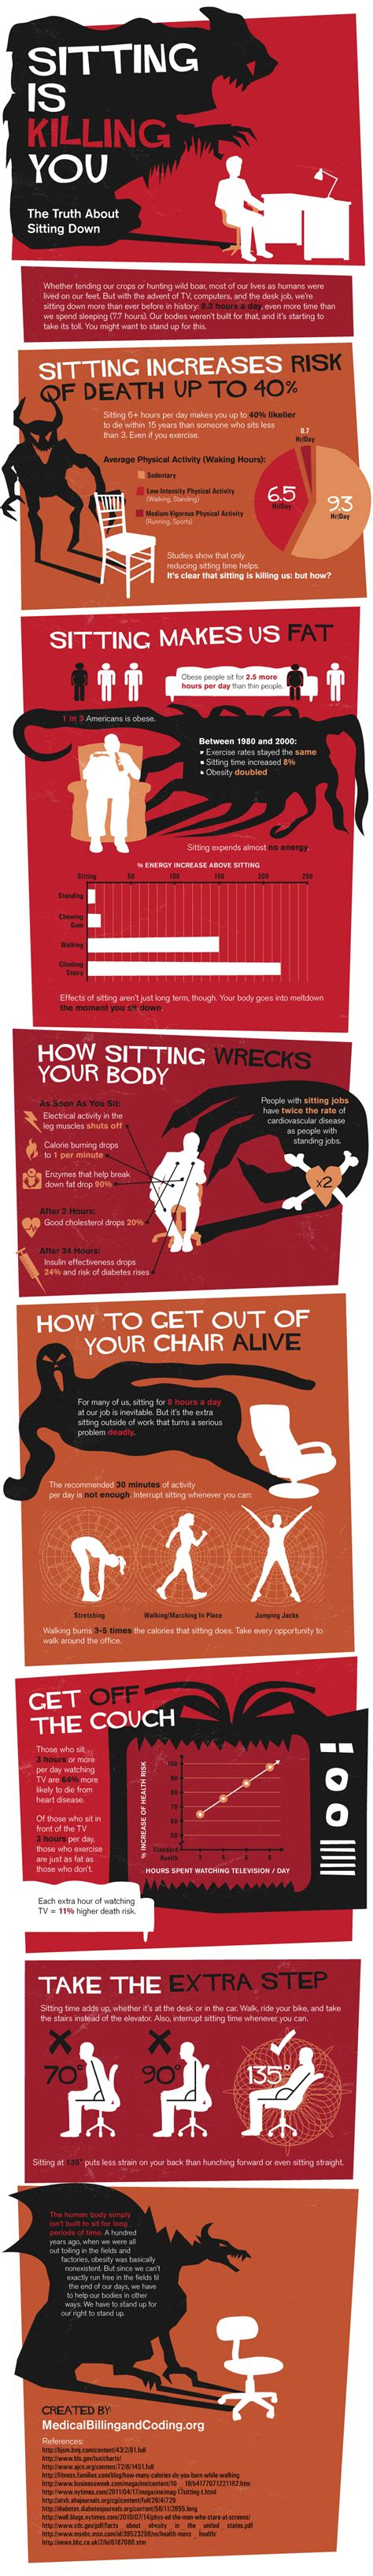 Killing You sitting is killing you daily infographic